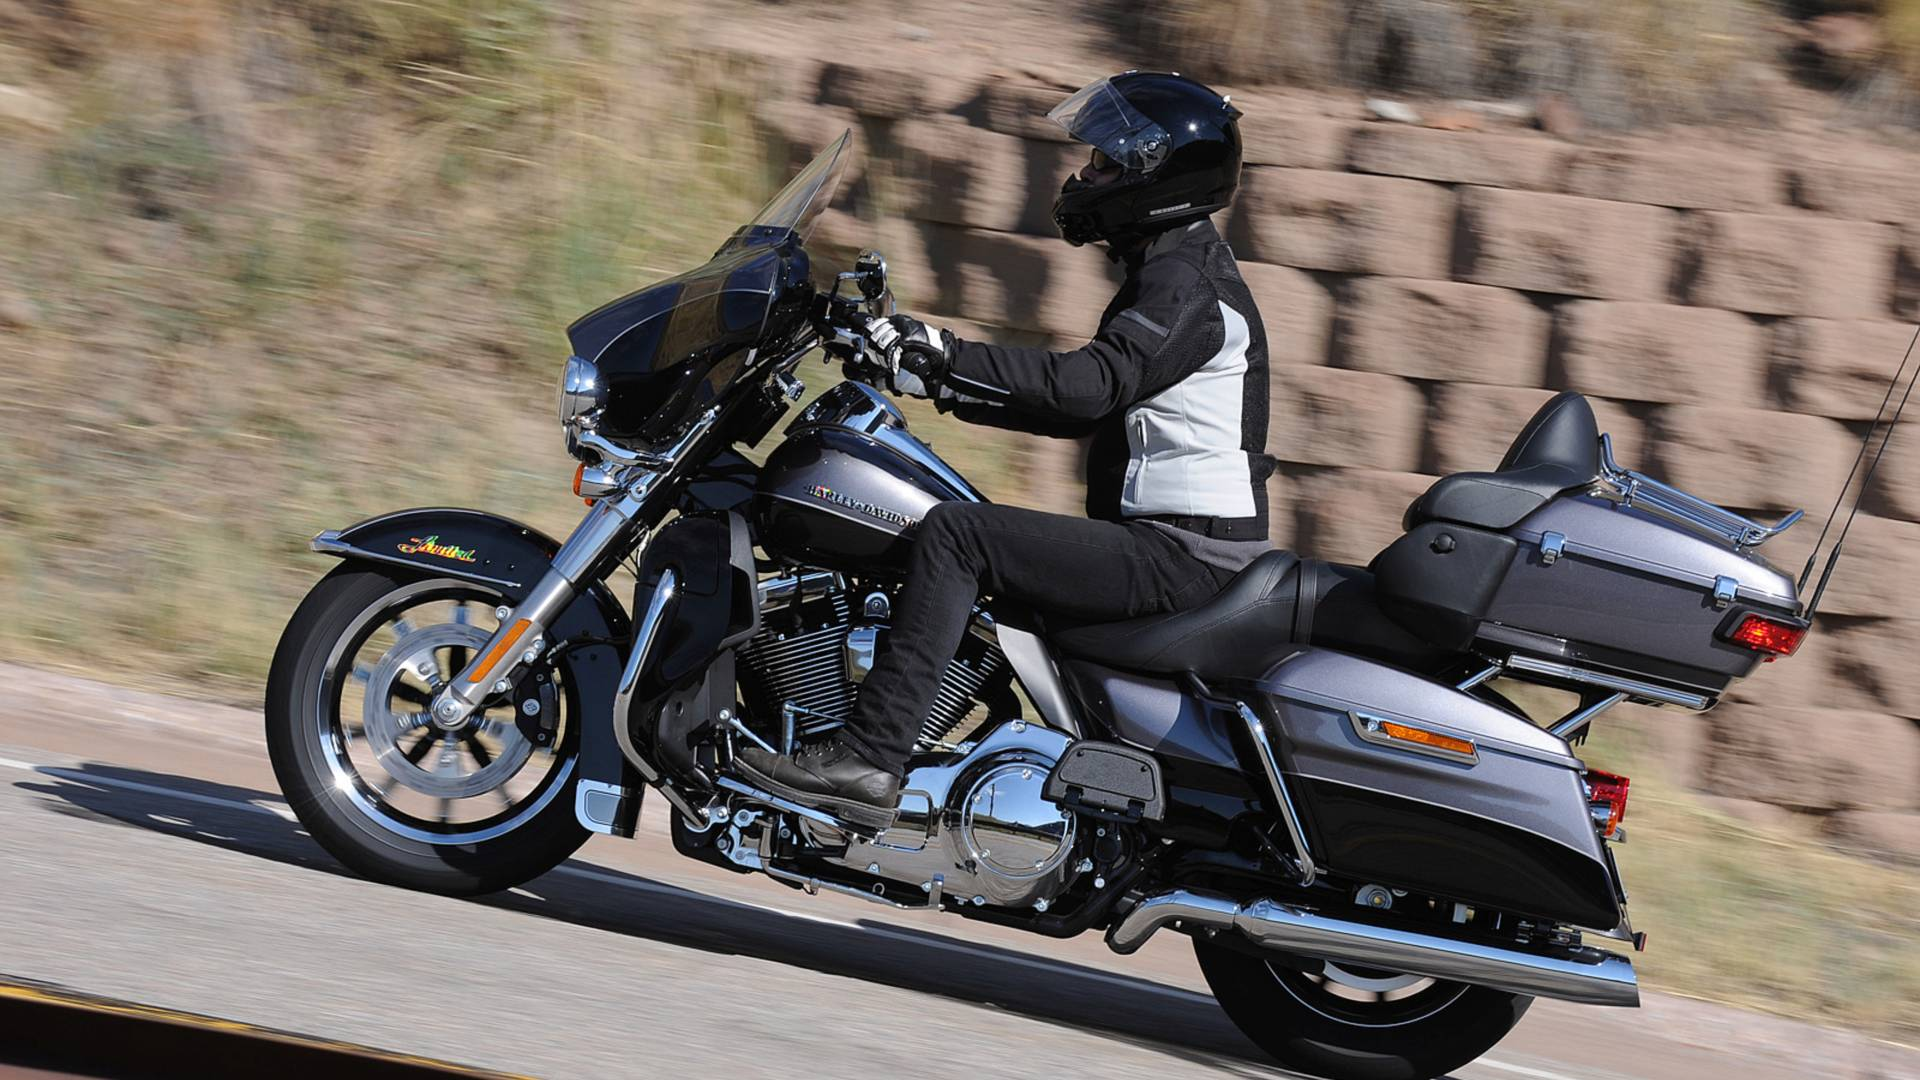 Harley Davidson Touring With Harley Davidson Issues Recall For Clutch Problem Again